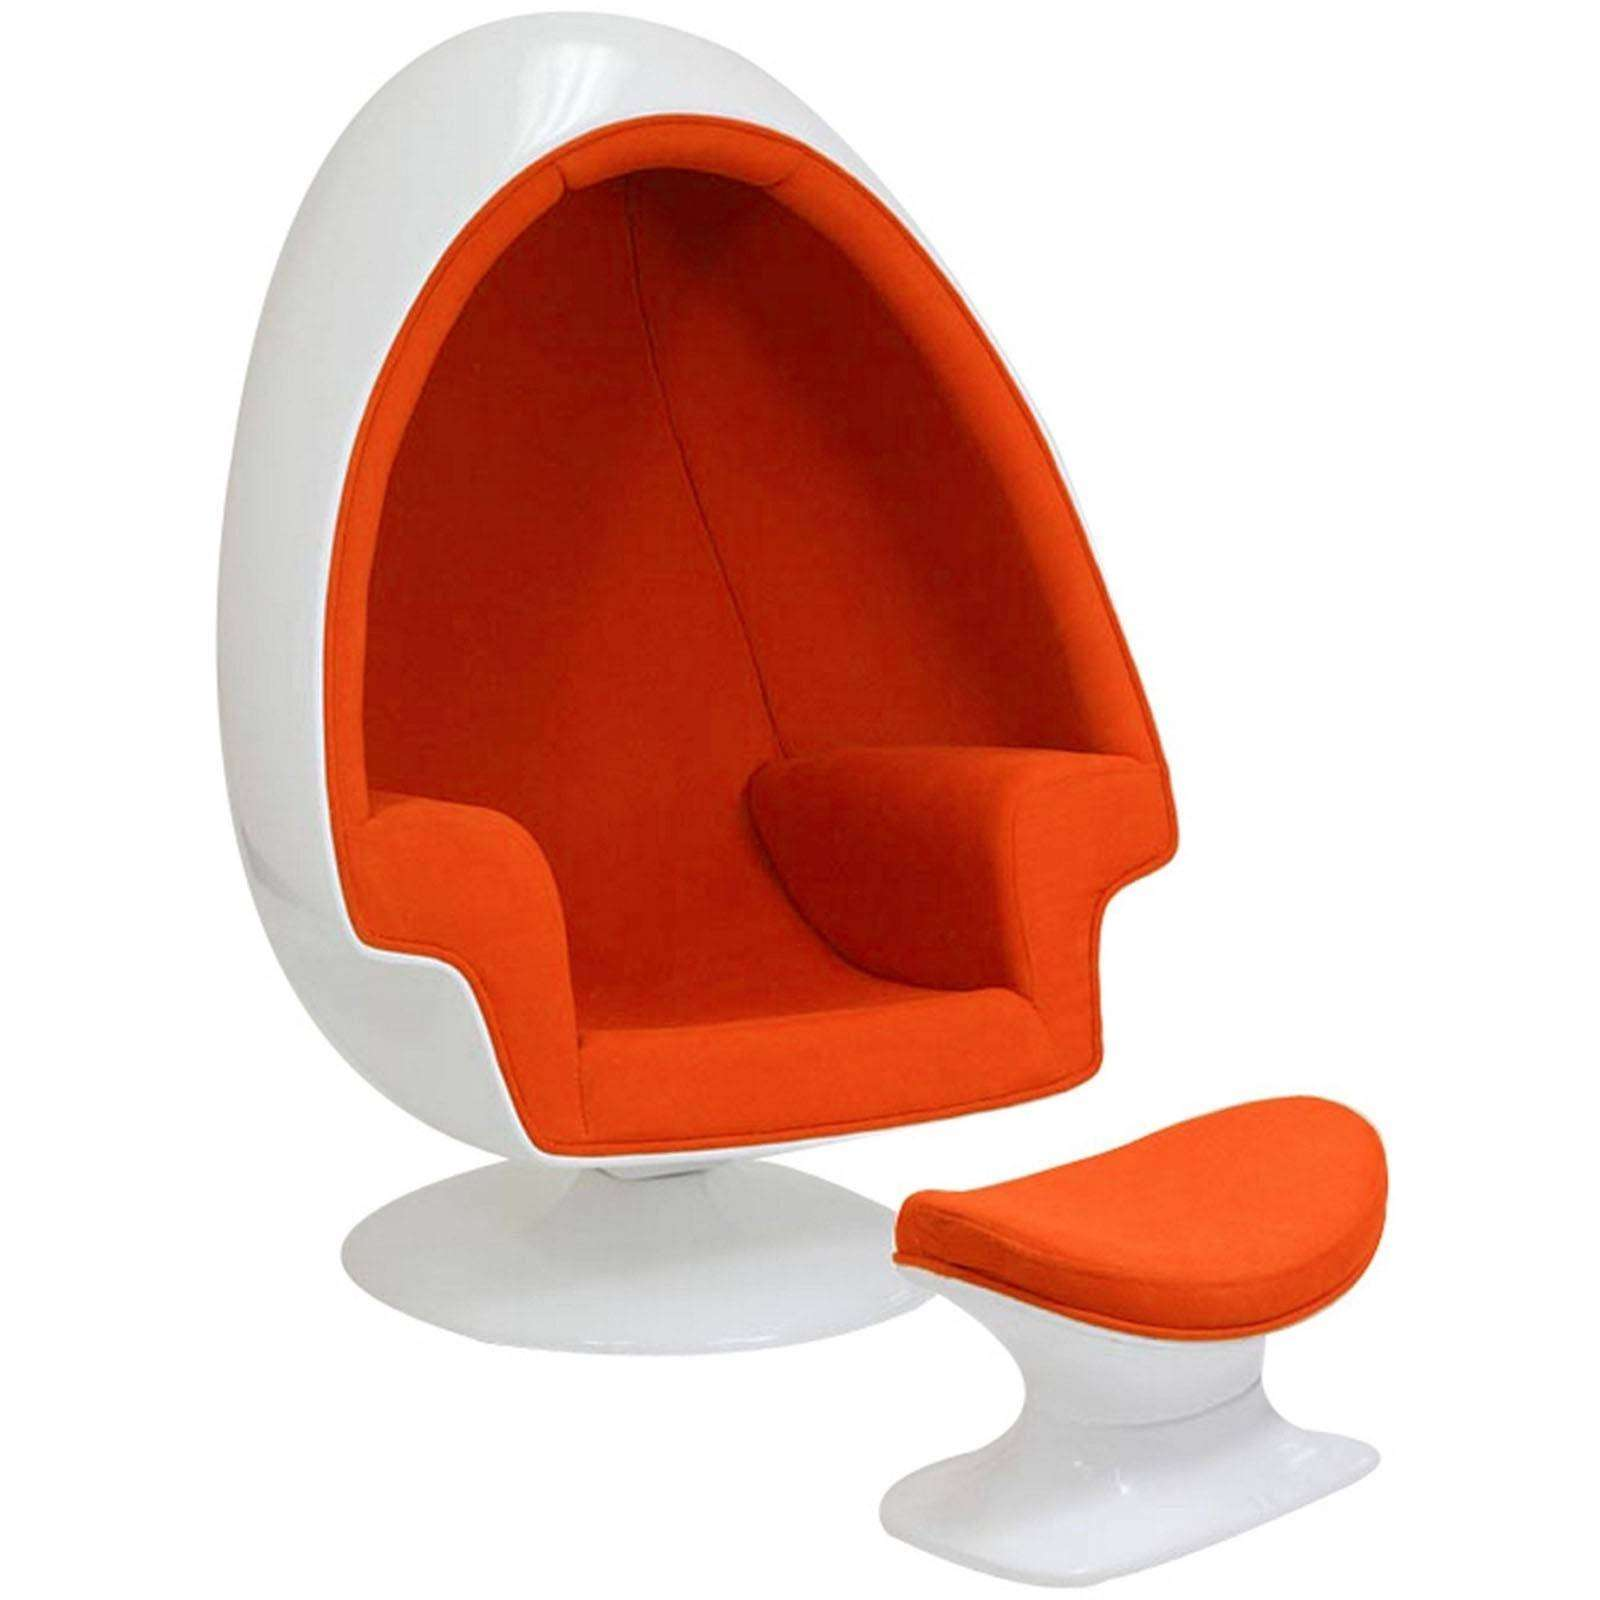 eero aarnio alpha shell egg chair ottoman. Black Bedroom Furniture Sets. Home Design Ideas